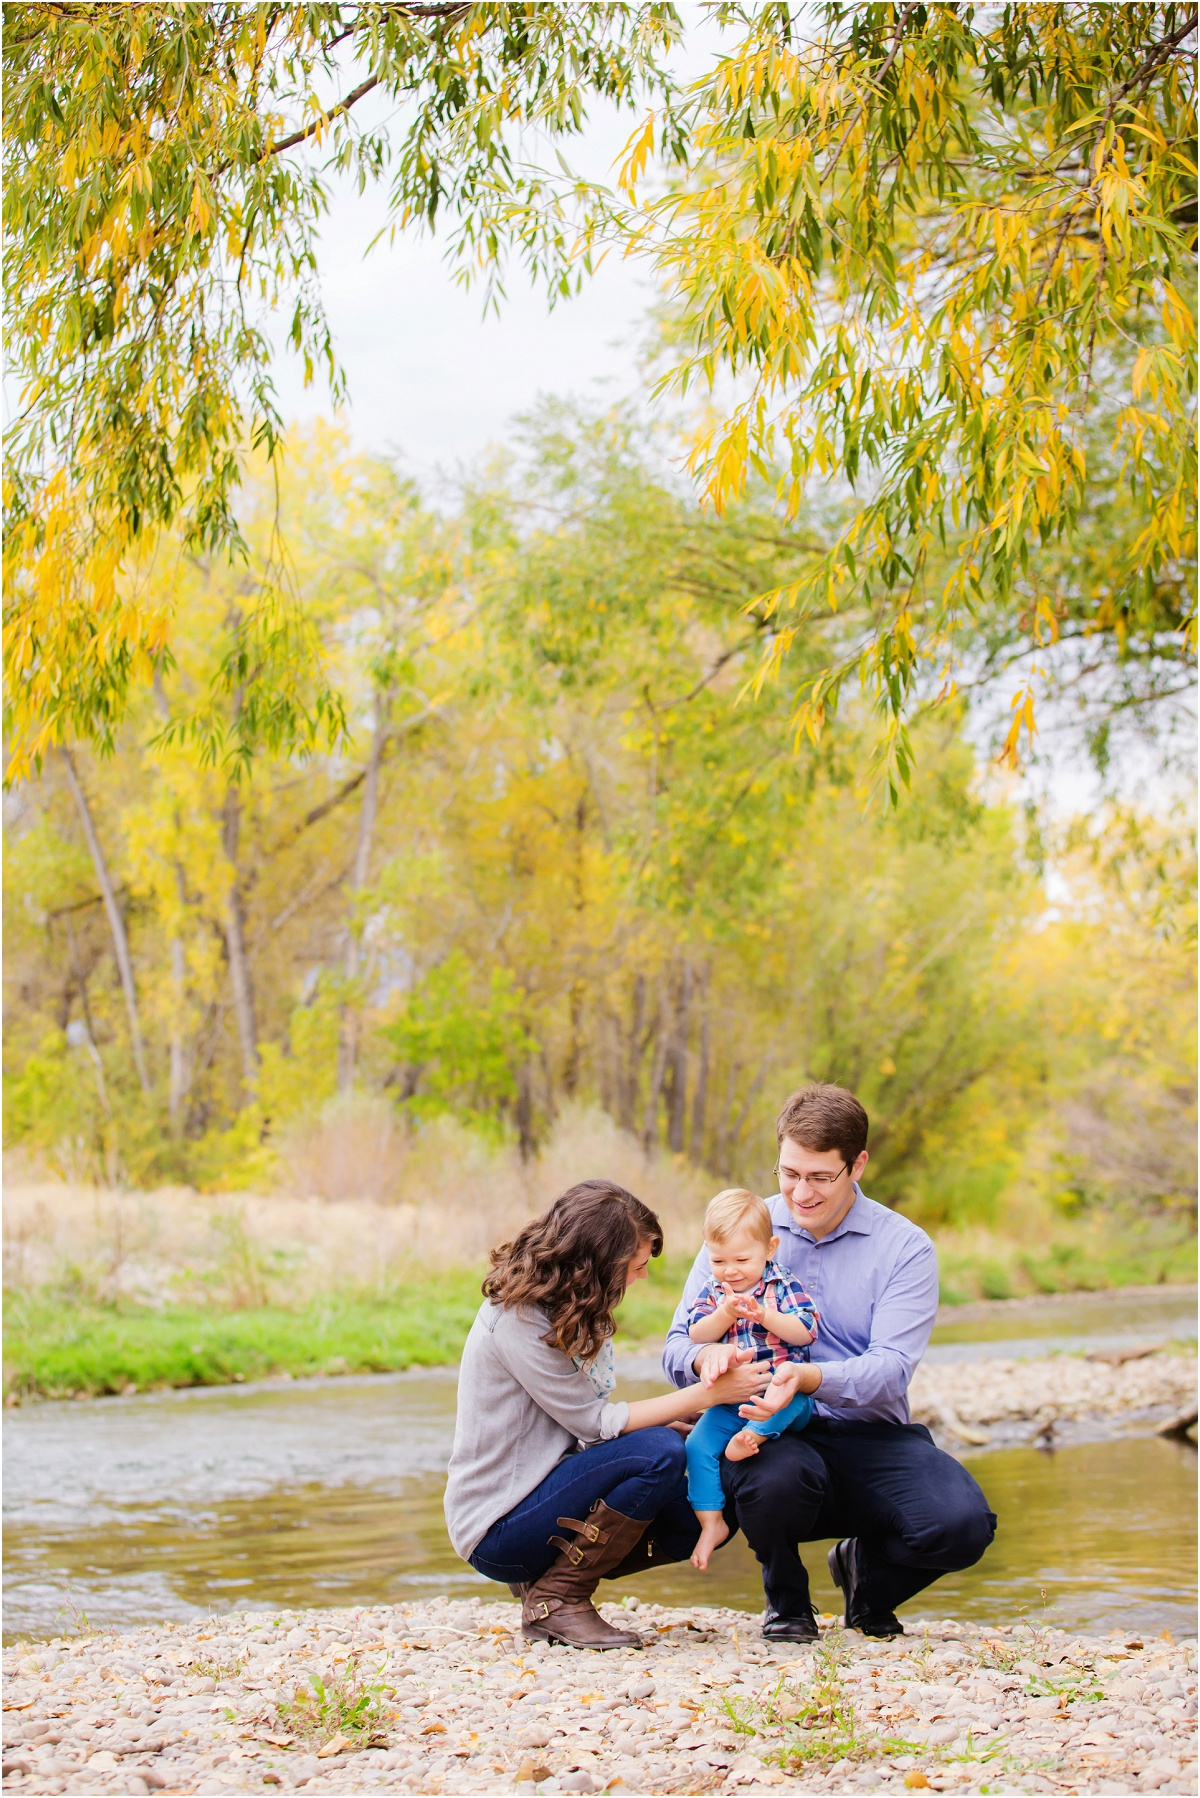 Terra Cooper Photography Utah Family Photography_5117.jpg